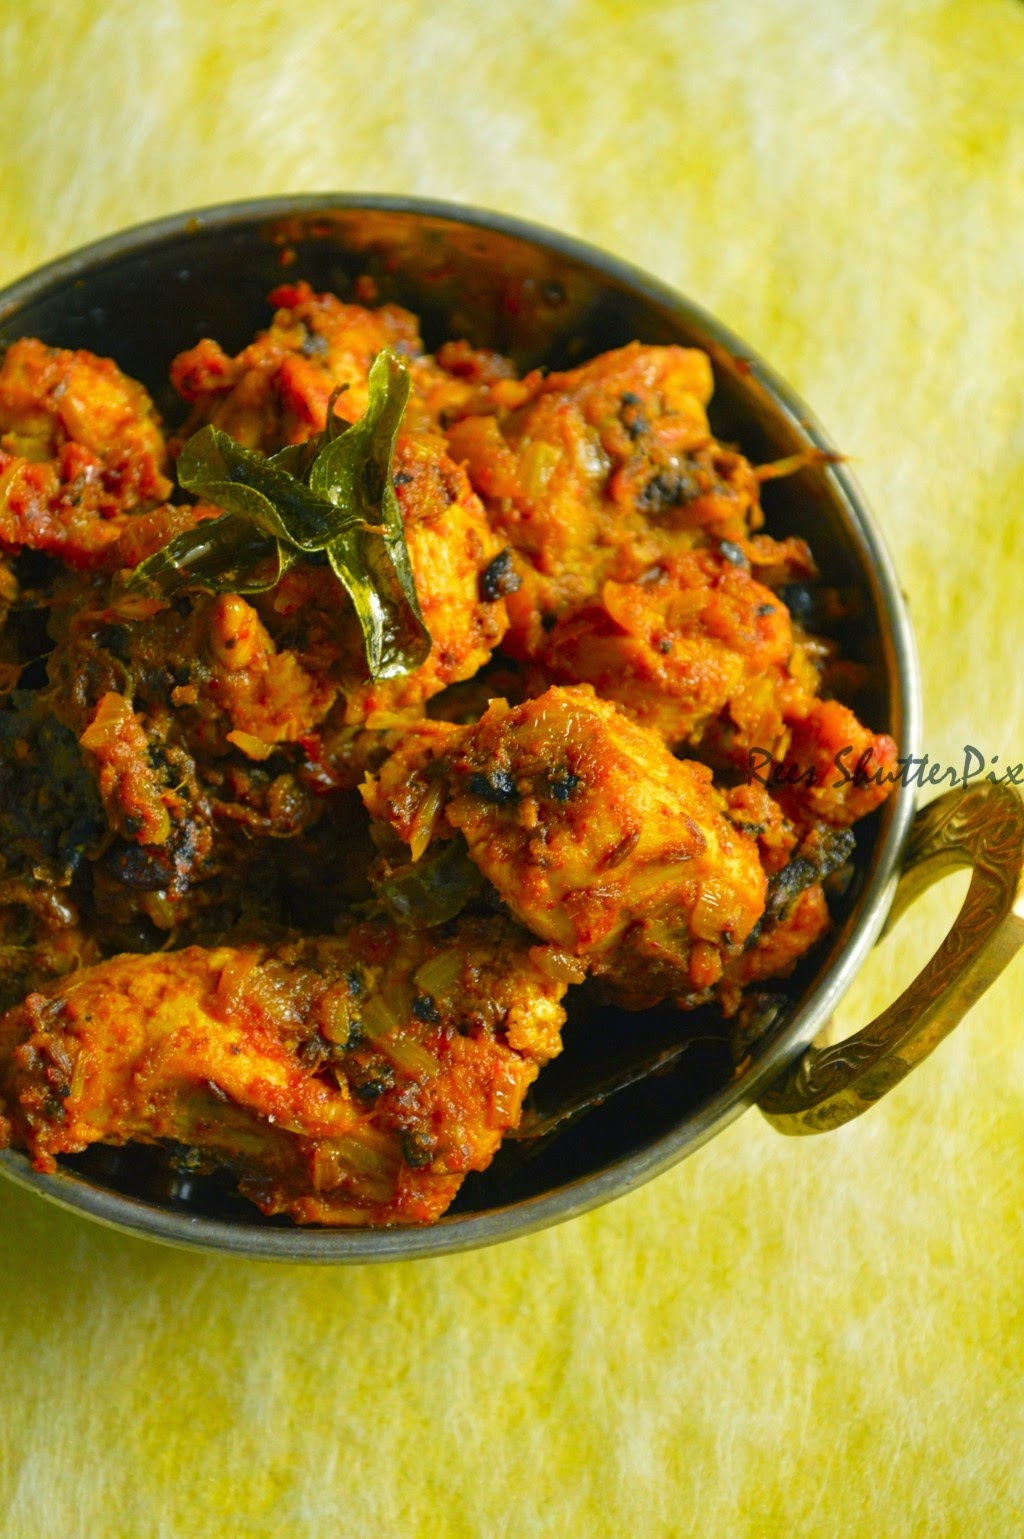 Chicken Starter Recipes, how to make pepper chicken chettinad with step by step pictures, chettinad pepper chicken recipe, easy chicken recipes, spicy chettinad chicken